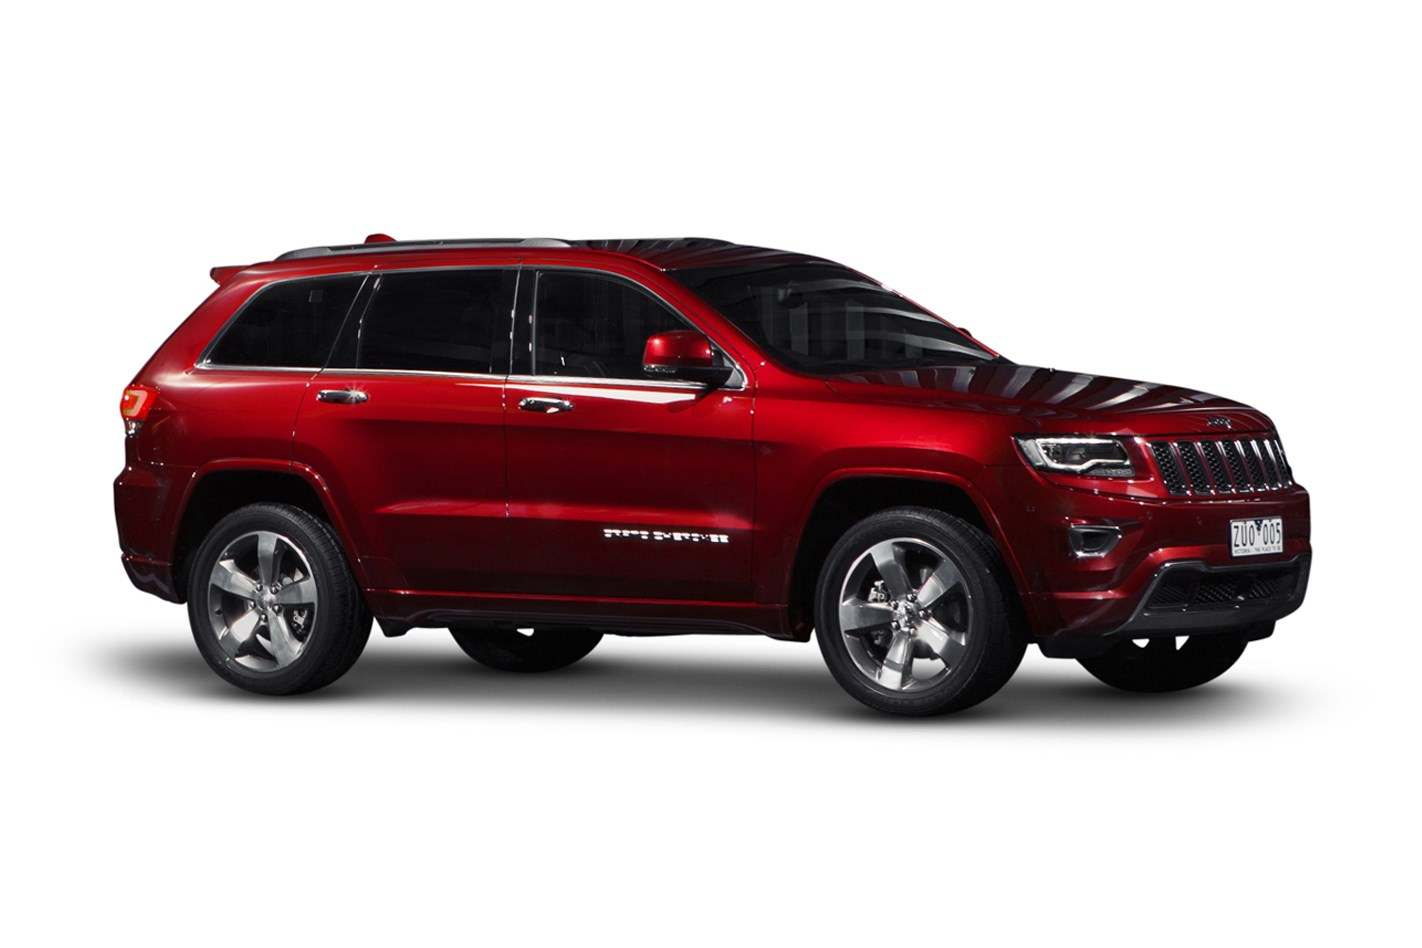 2018 Jeep Grand Cherokee Overland (4x4) 4D Wagon